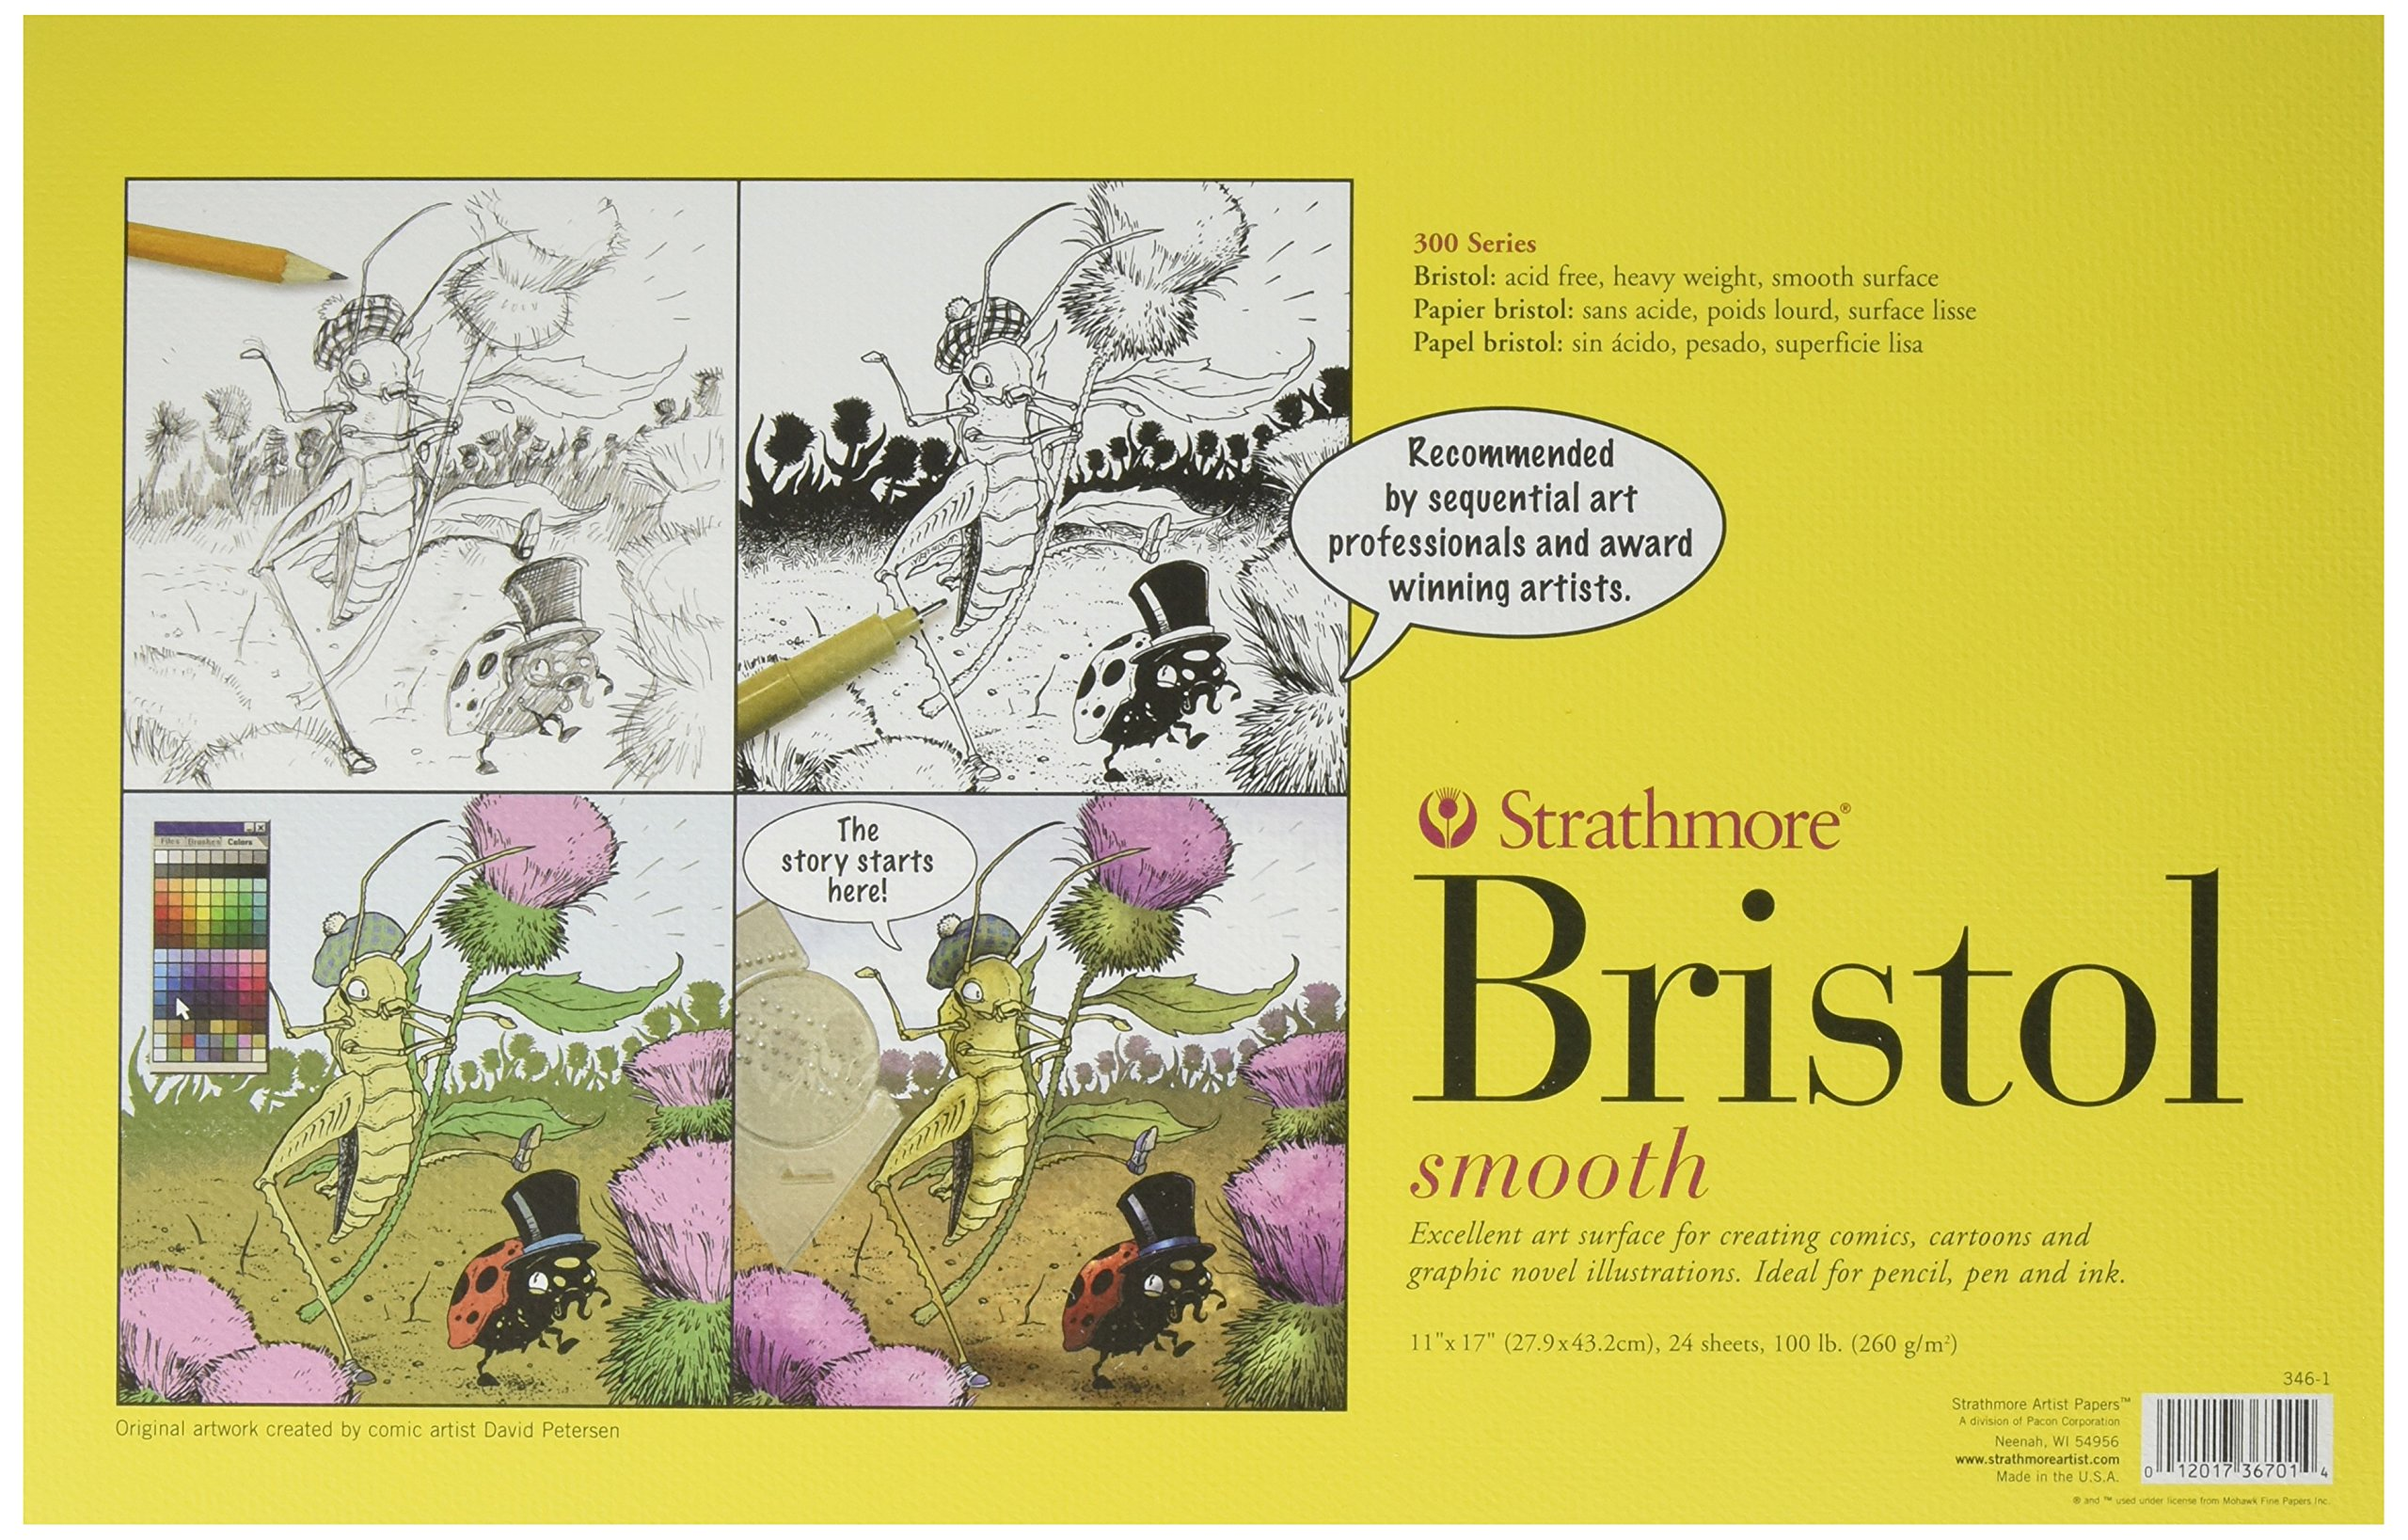 Strathmore 346-1 Paper 300 Series Sequential Art Bristol, Smooth 11 x 17 Inches White 24 Sheets